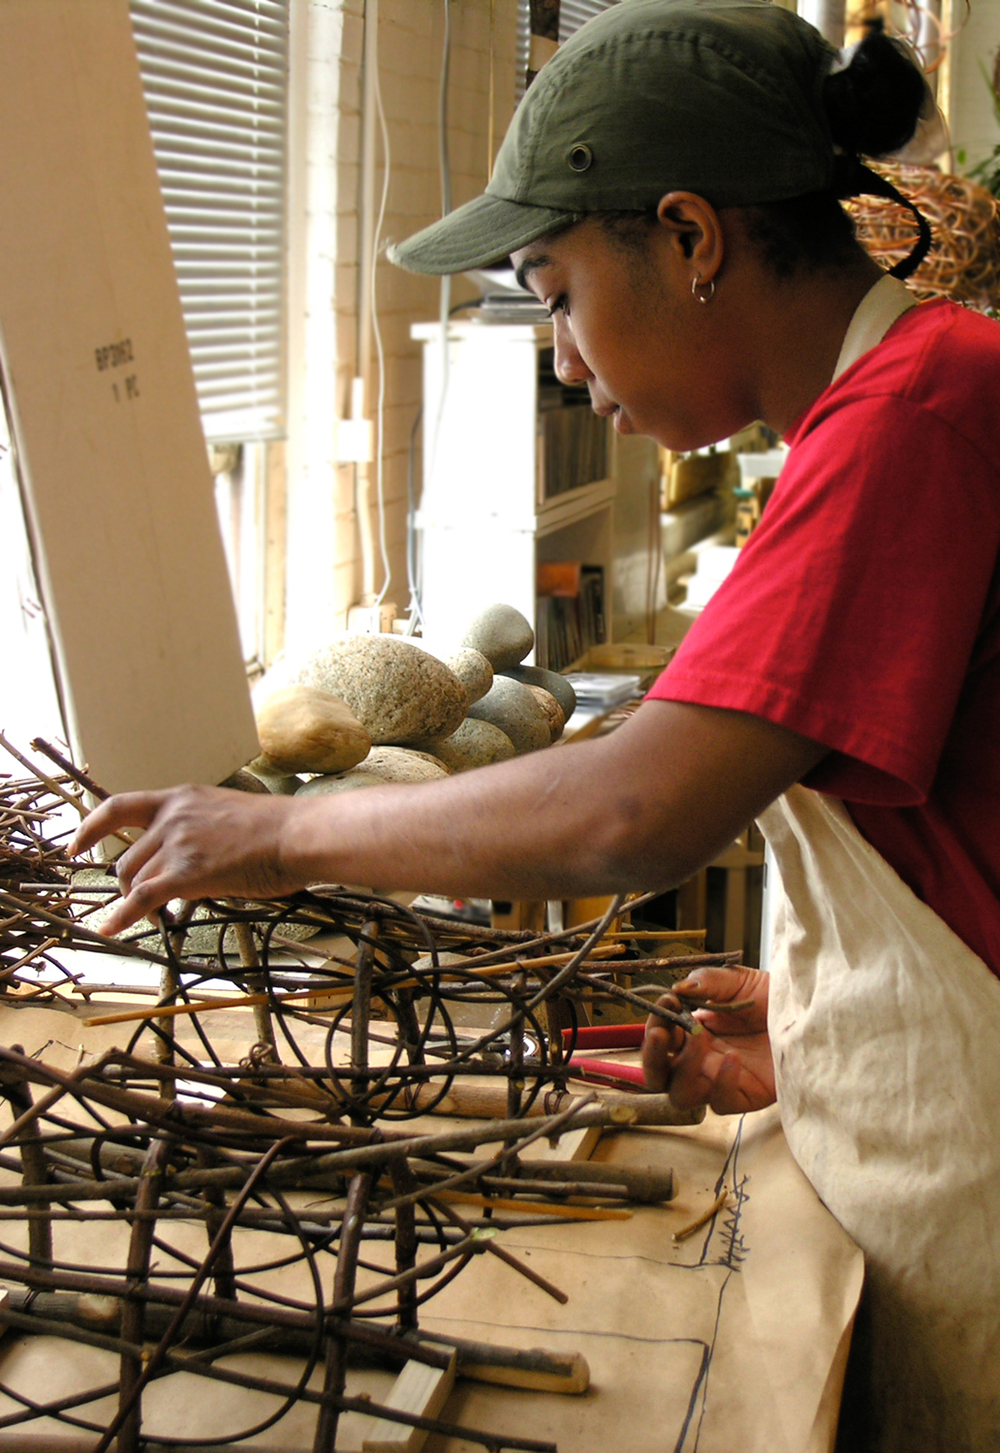 Weaving Thicket Sconces for the Marriot Hilton Head Spa in South Carolina.